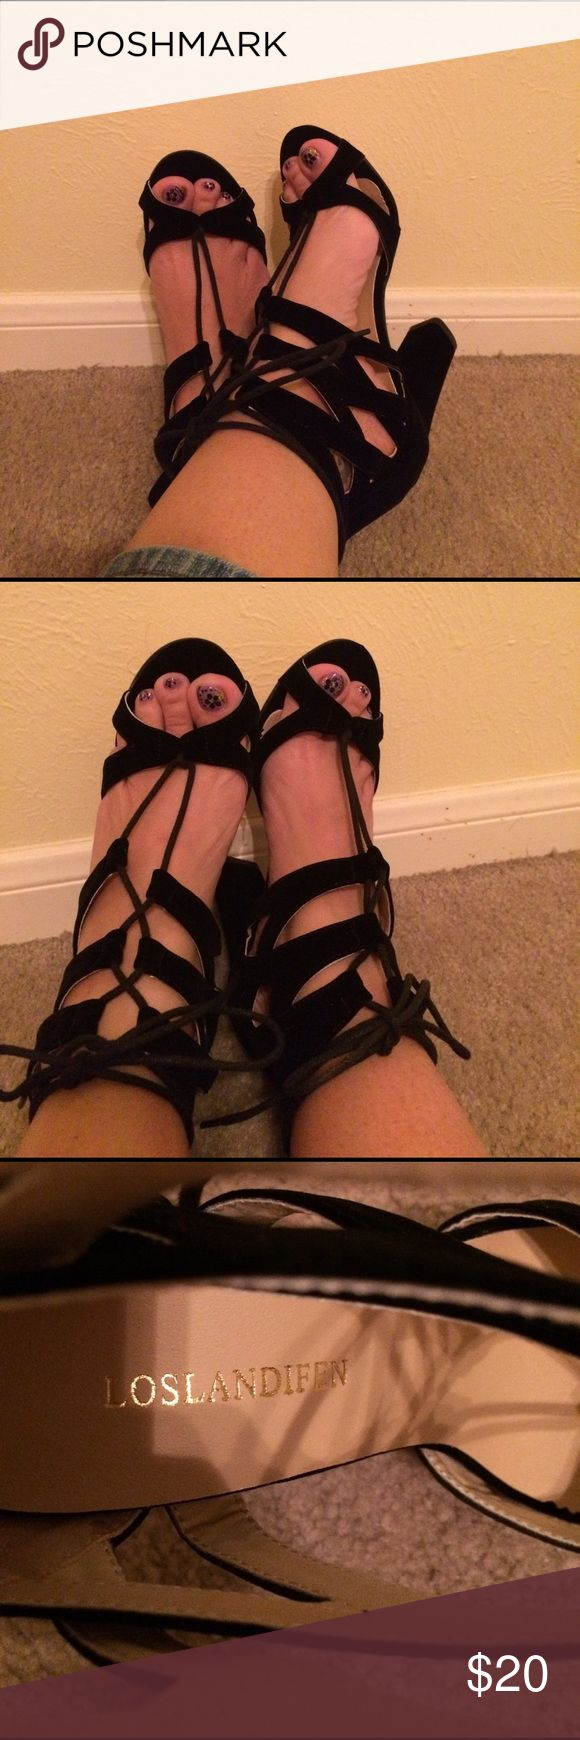 Loslandofen 4 inch heels size 7 NWOB Black new, never worn. Lace up block heel sandals loslandifen Shoes Sandals